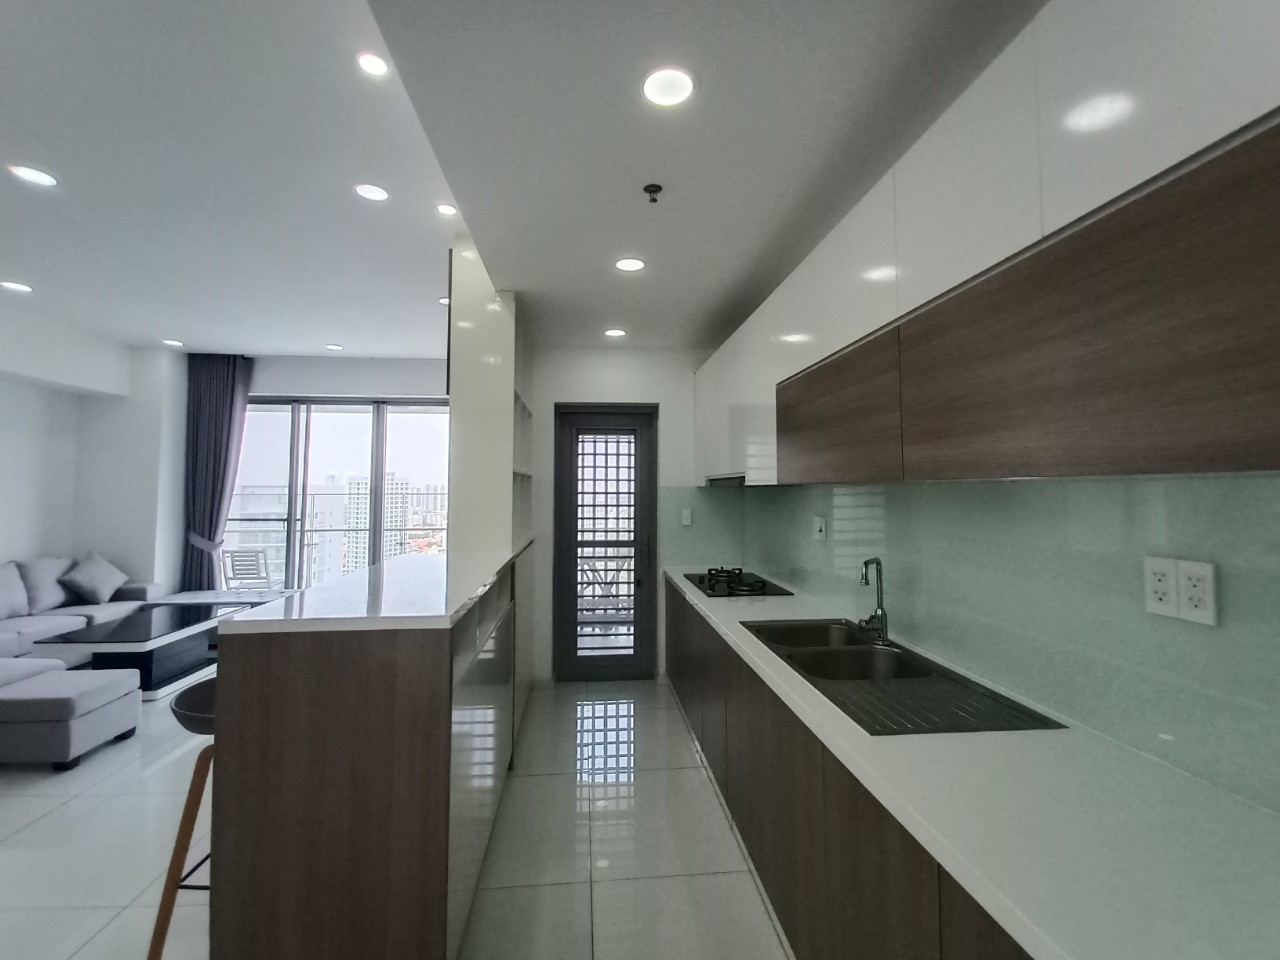 3 bedrooms for rent in green valley apartment